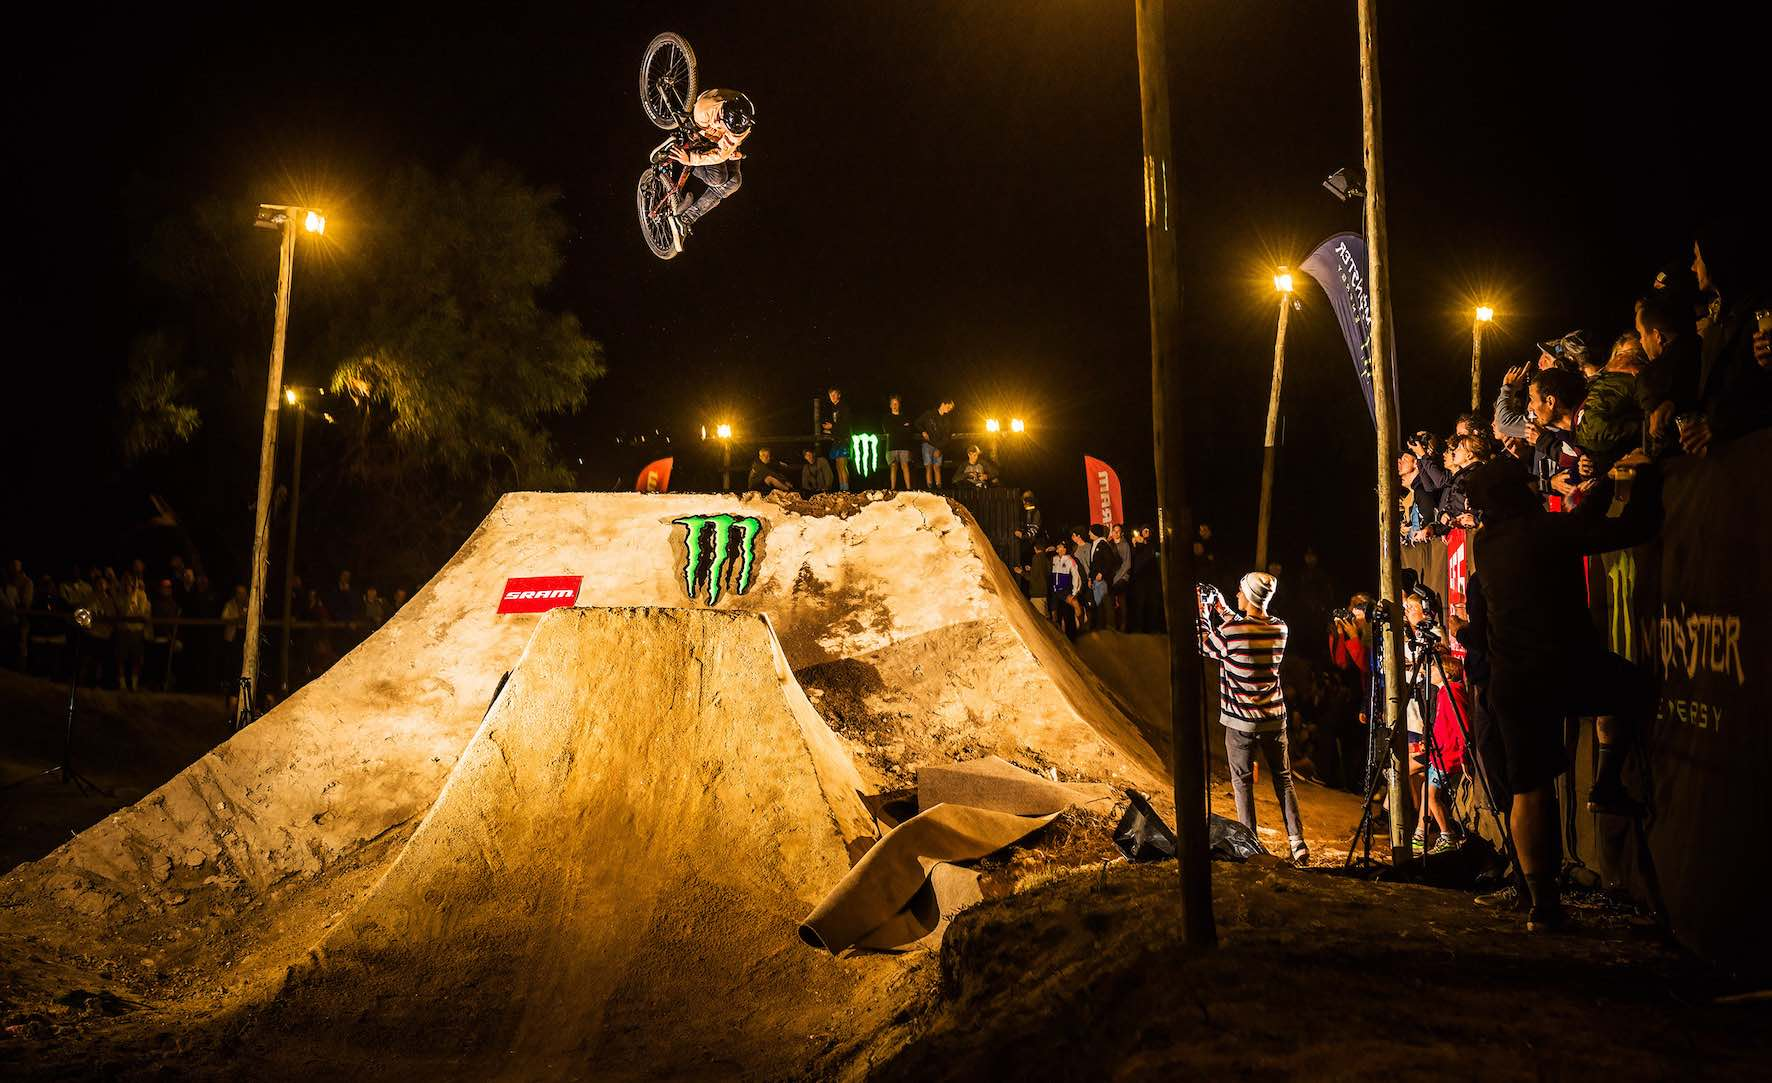 Lukas Skiold taking 1st place in The Night Harvest 2019 MTB dirt jump contest